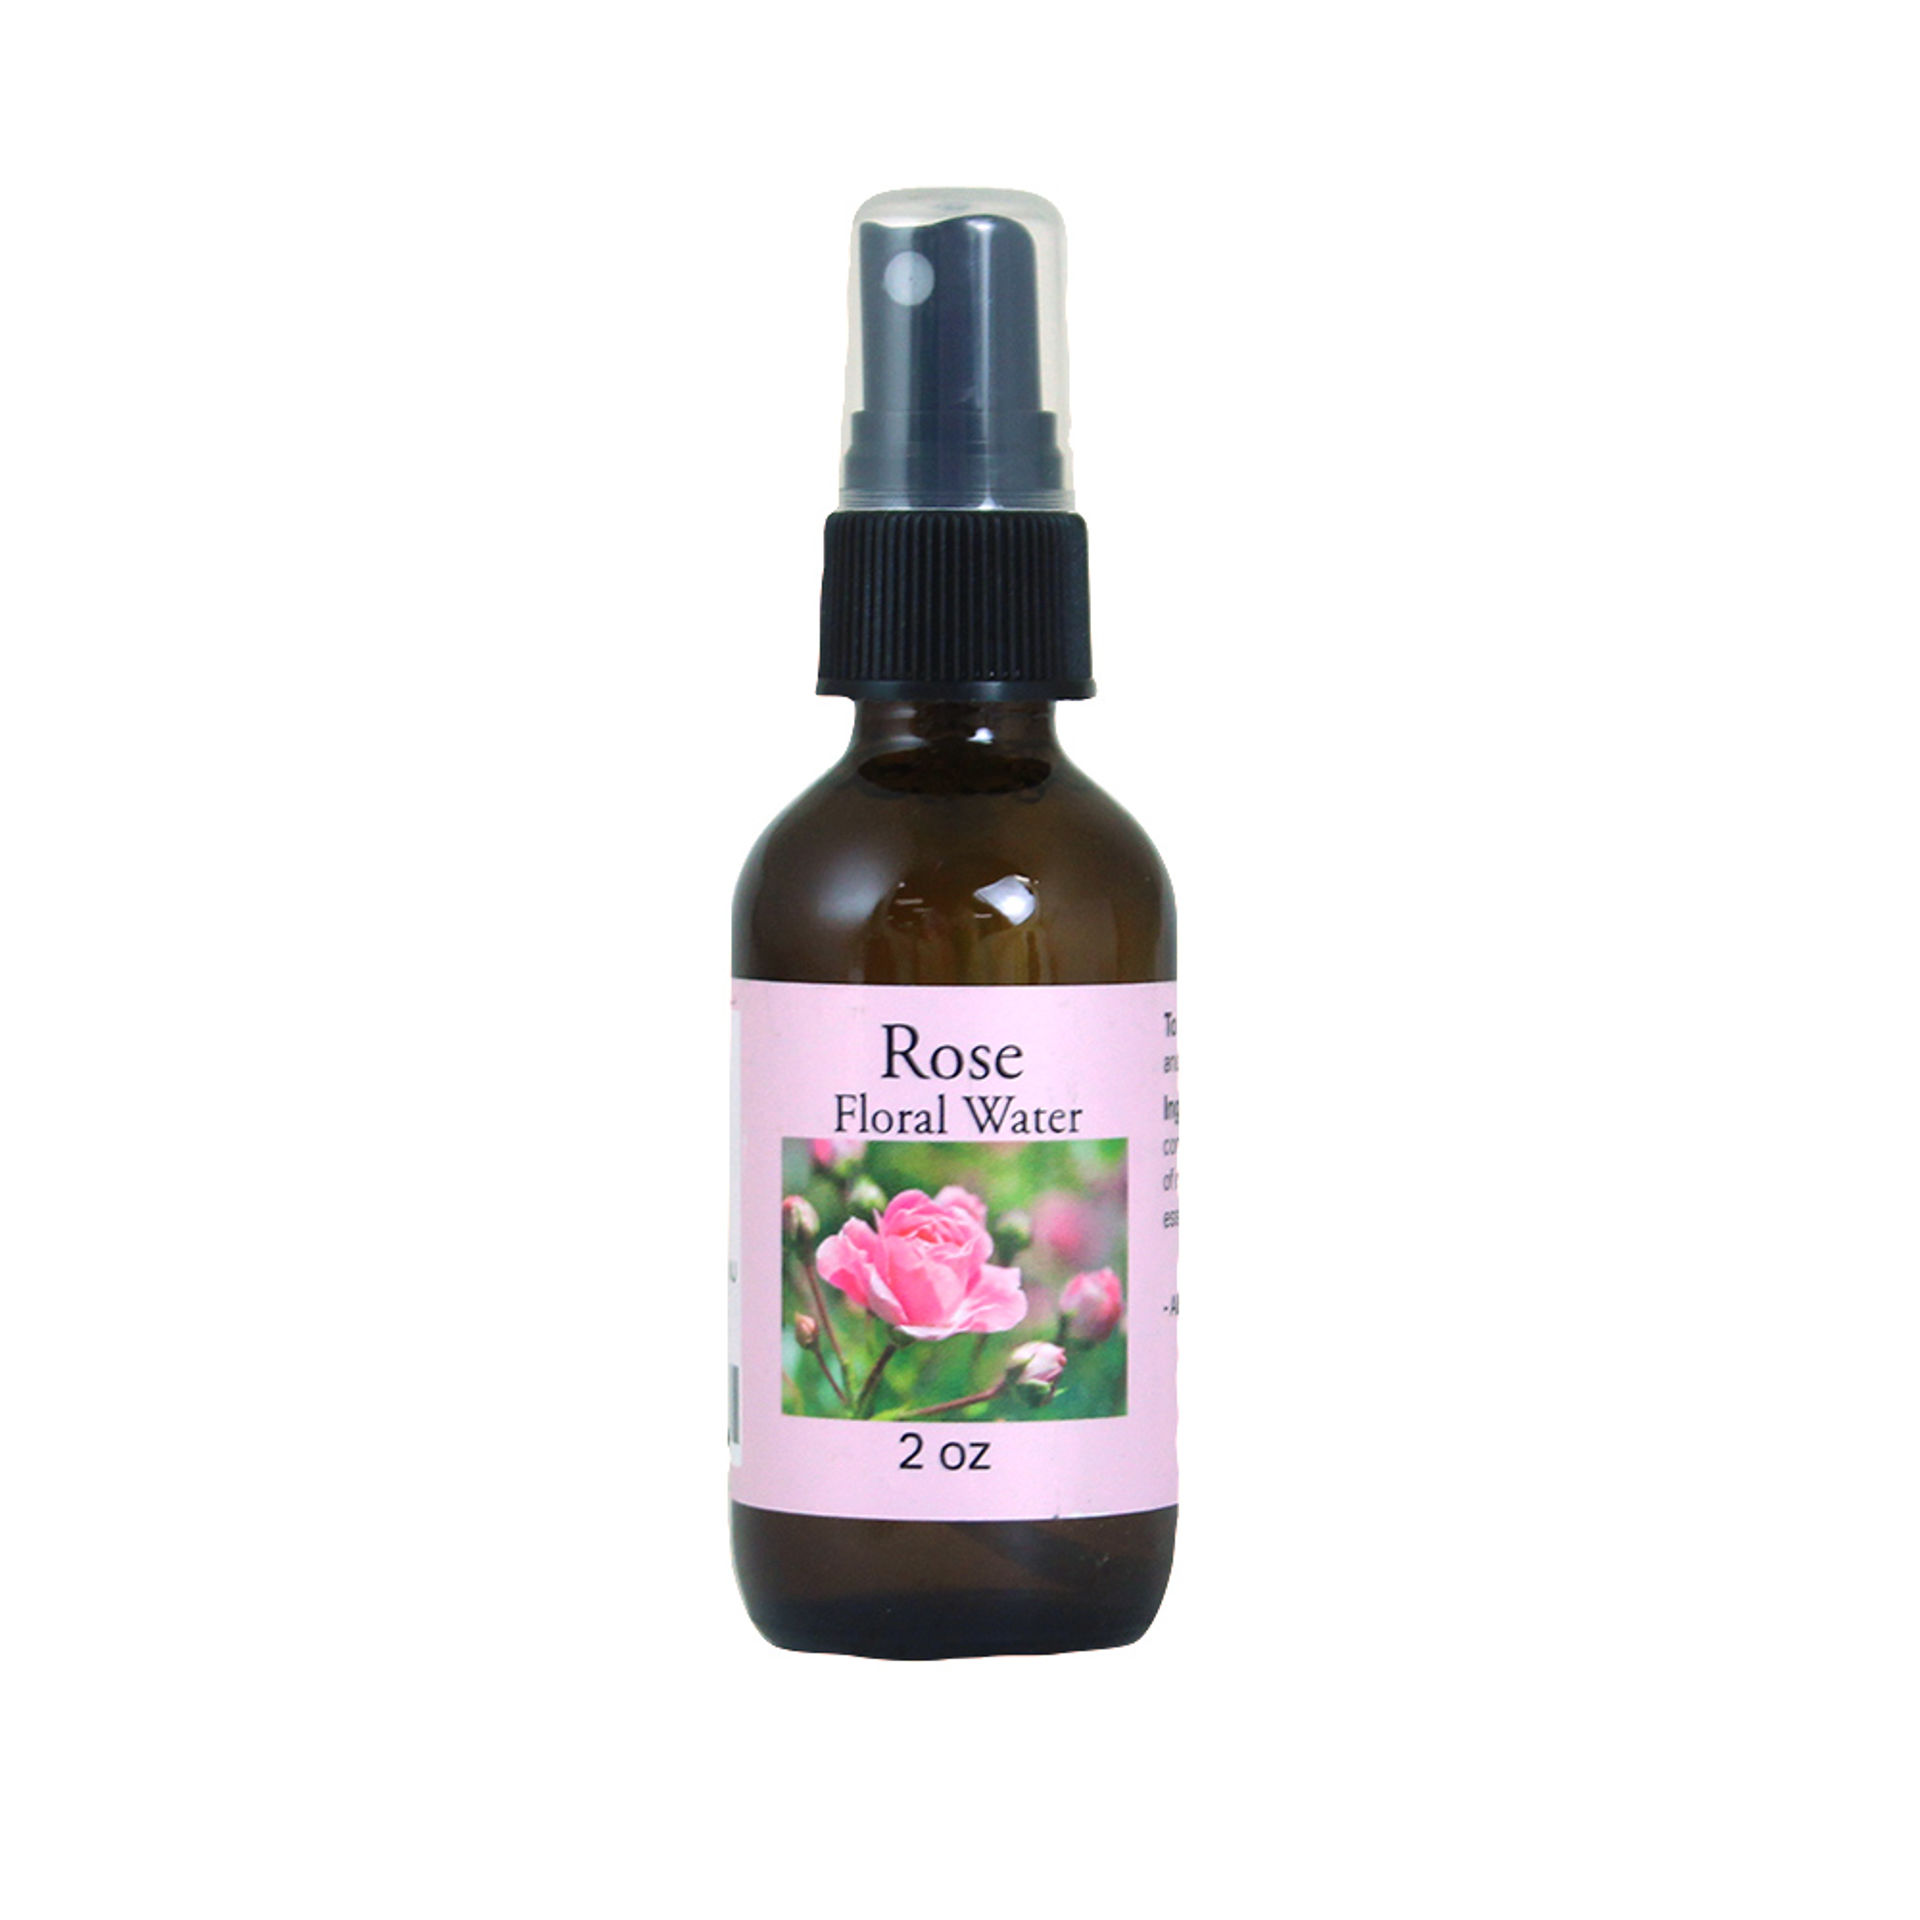 Picture of Rose Floral Water - 2 oz.